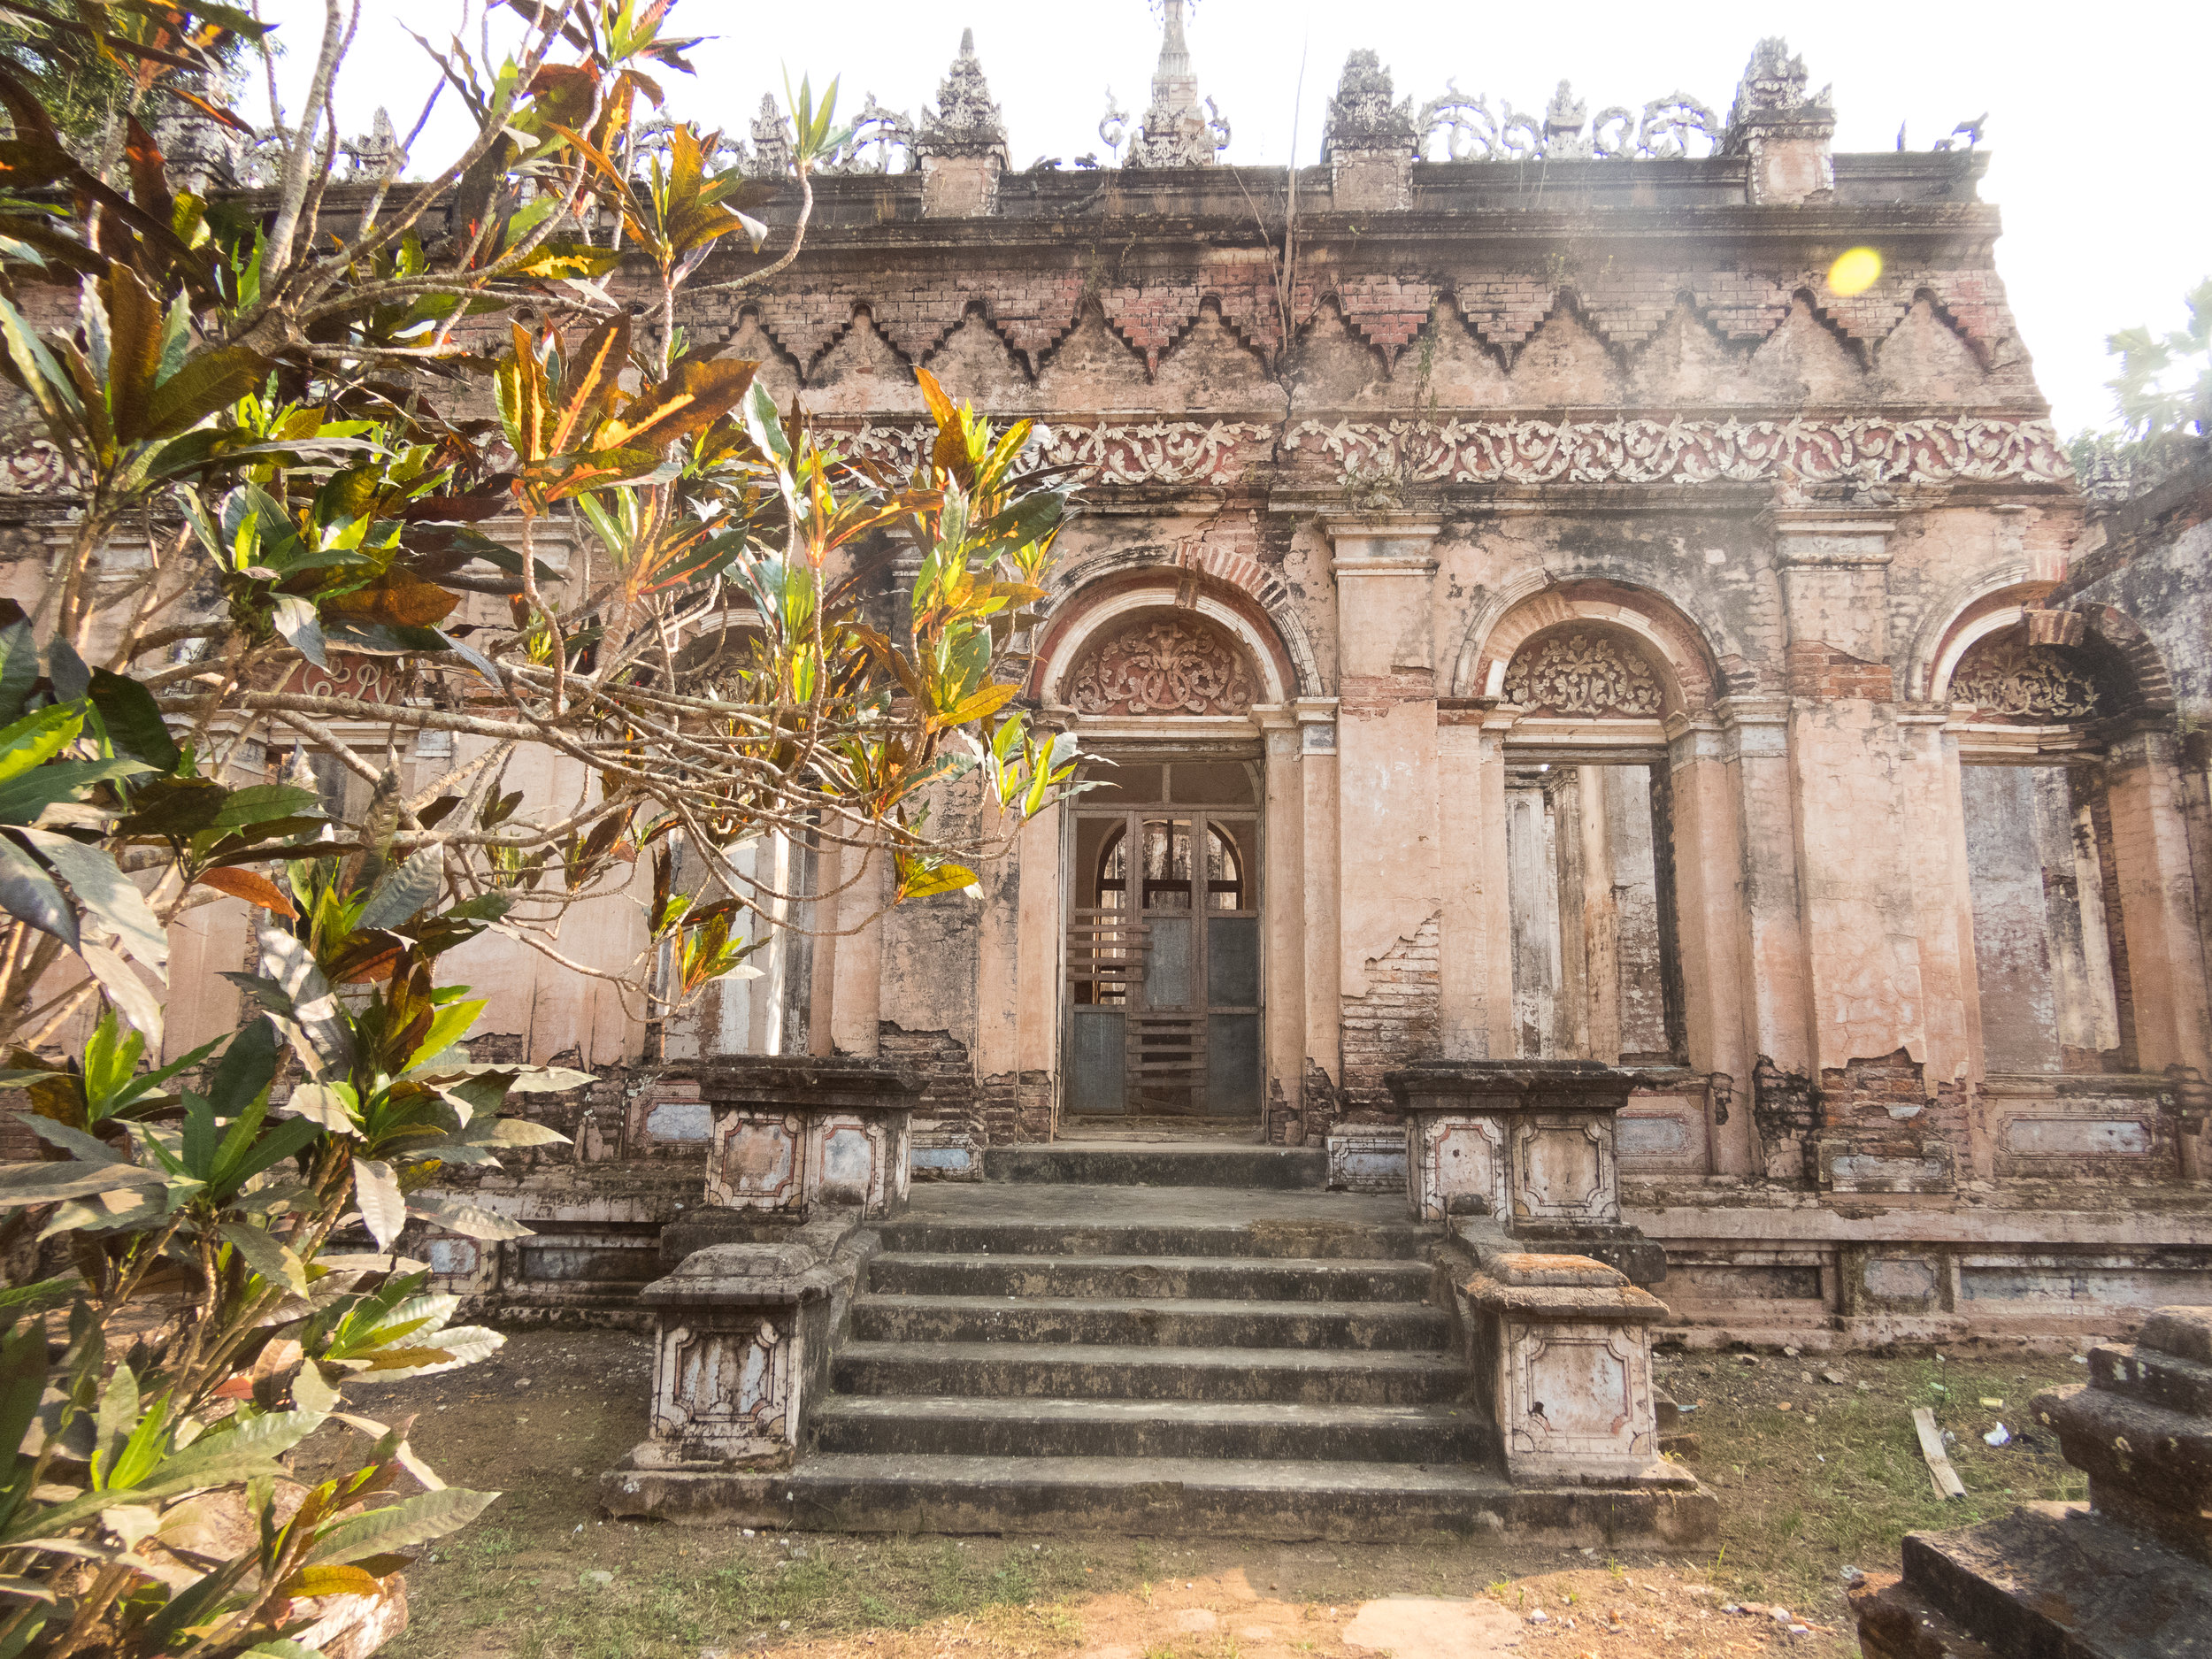 Here's the monastery that got damaged in an earthquake. It is no longer used.